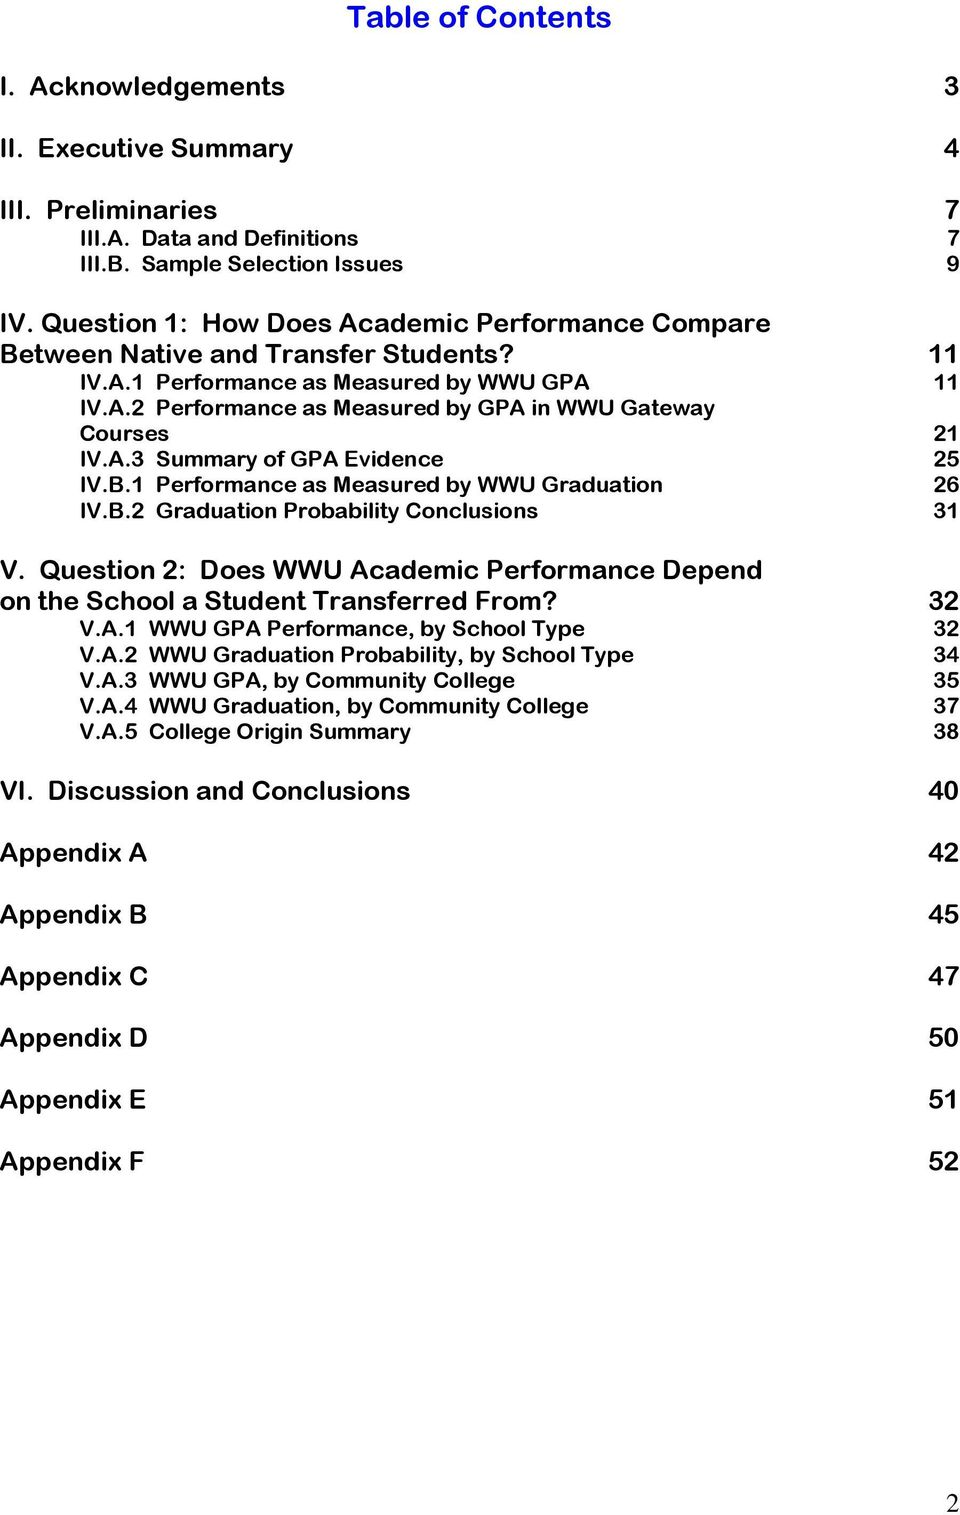 B.1 Performance as Measured by WWU Graduation IV.B.2 Graduation Probability Conclusions V. Question 2: Does WWU Academic Performance Depend on the School a Student Transferred From? V.A.1 WWU GPA Performance, by School Type V.